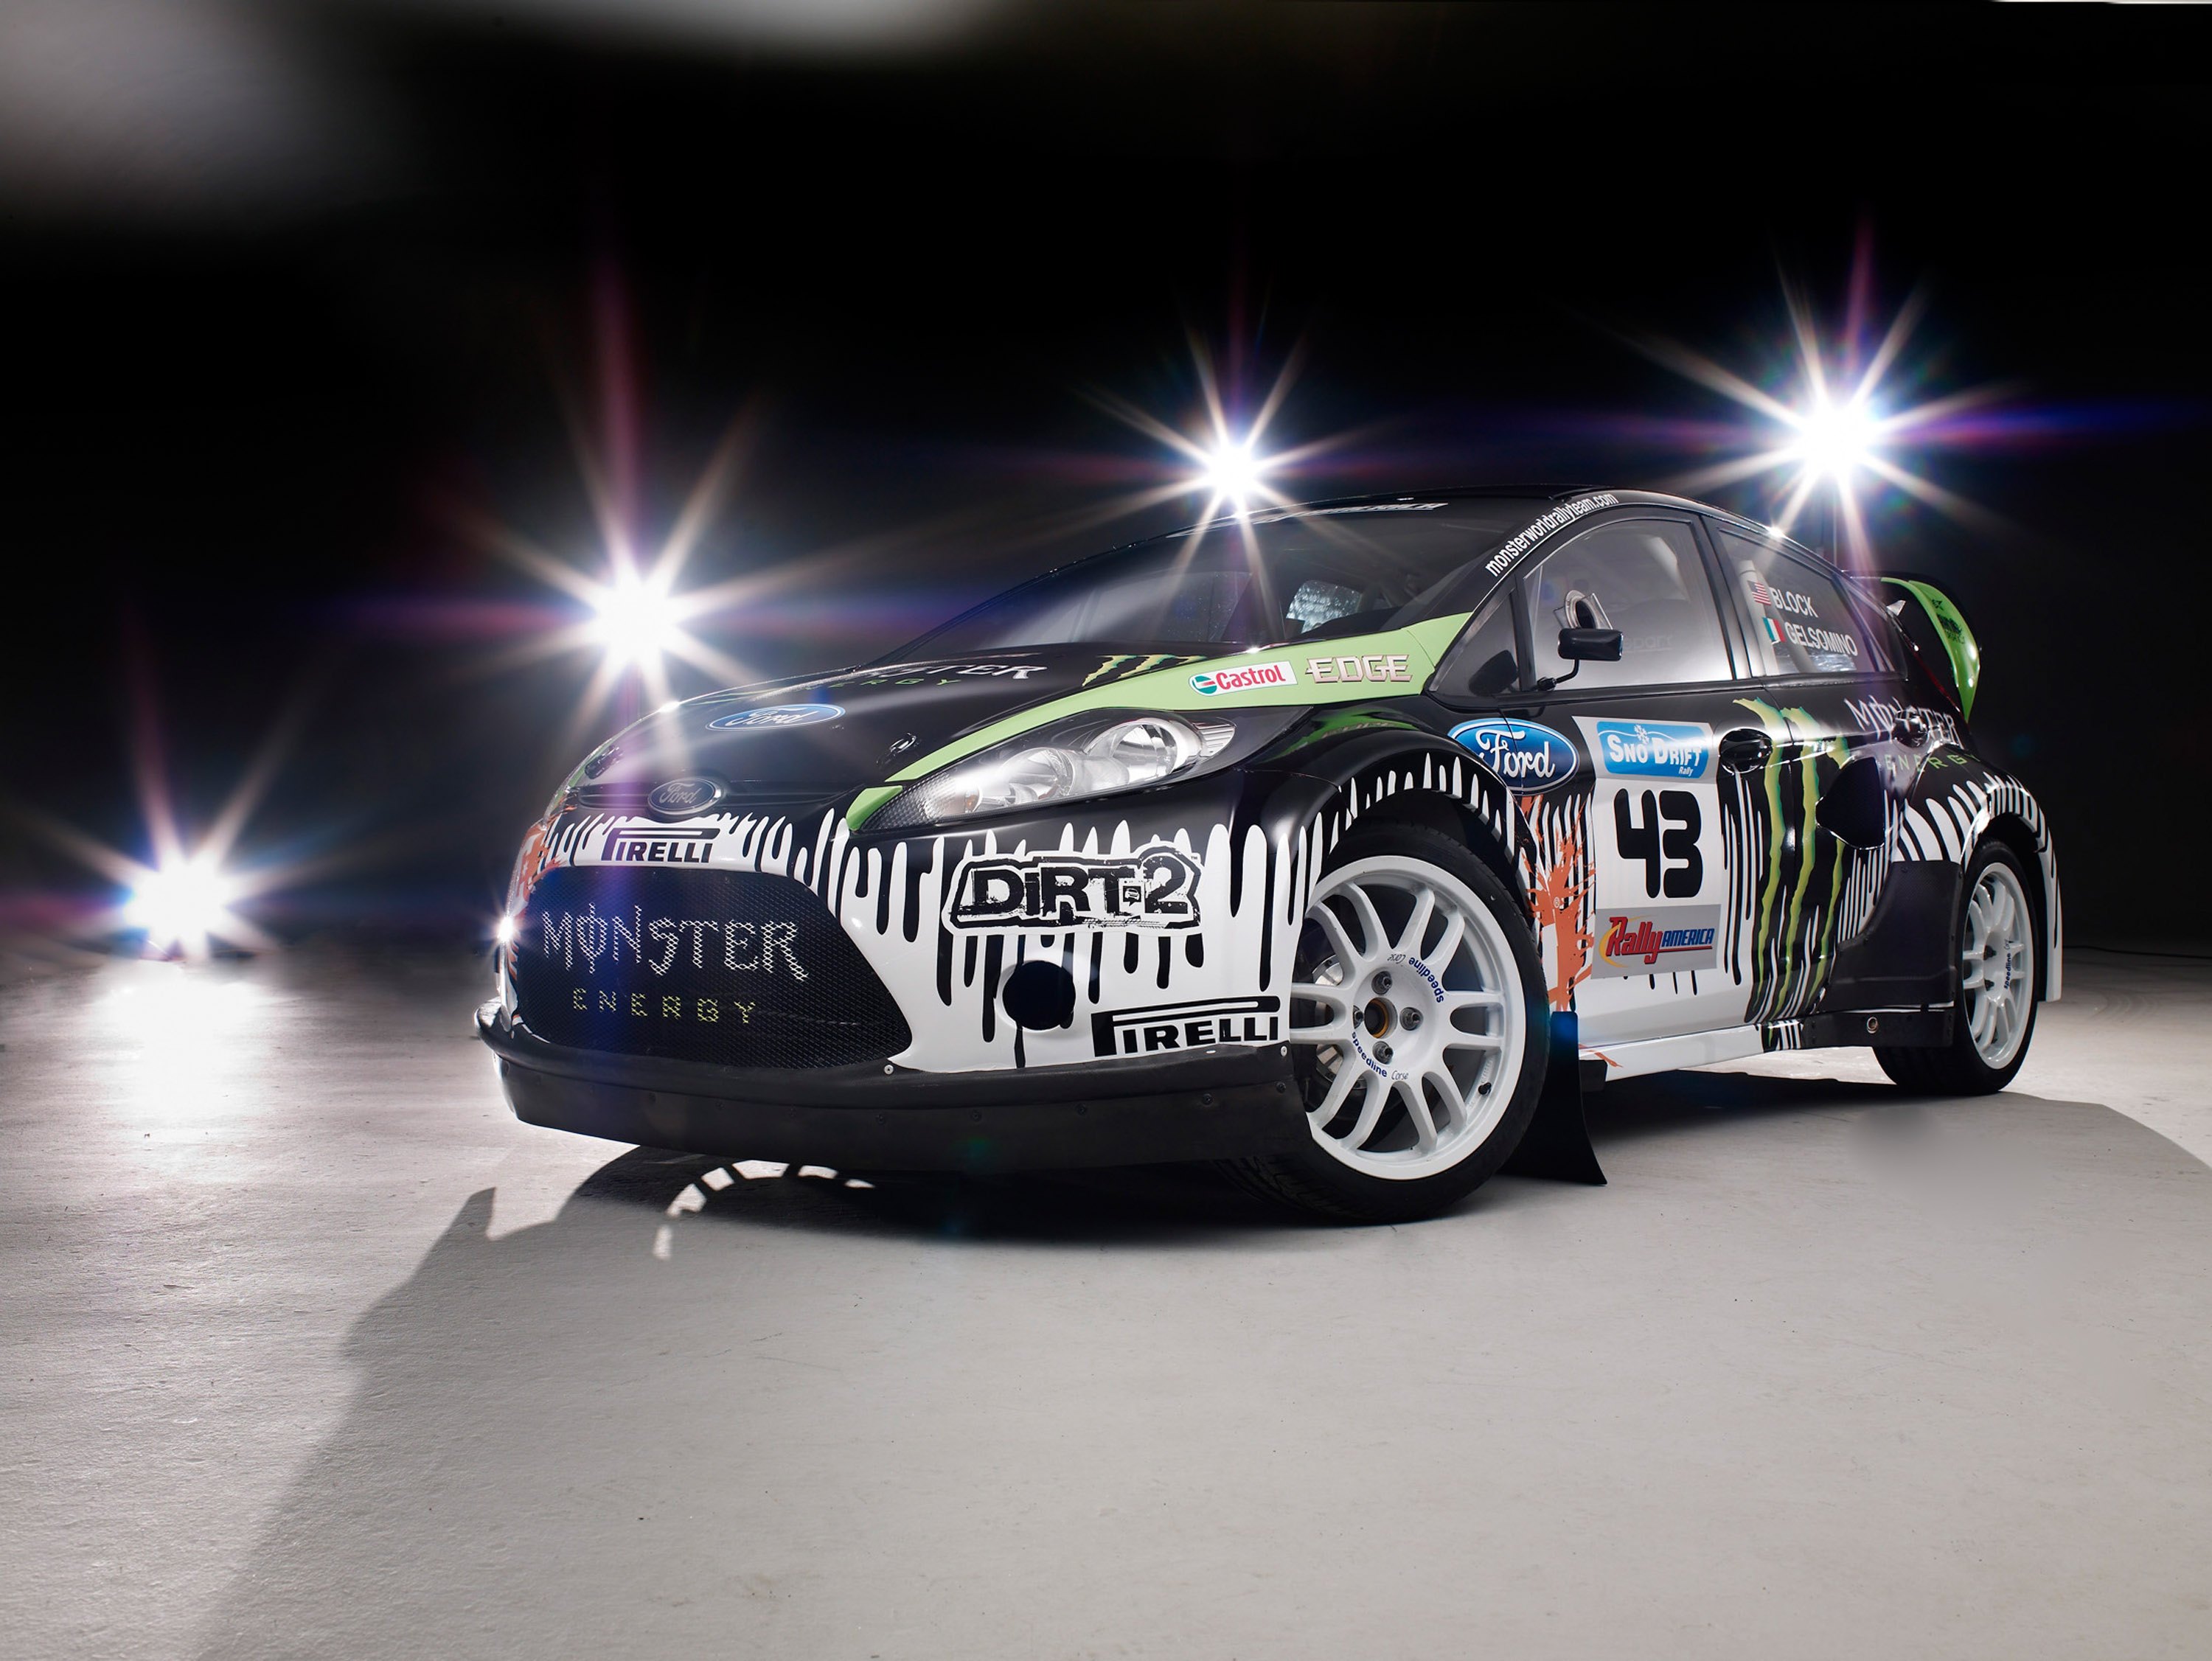 Ken block s monster ford fiesta picture from our gallery which contains 5 high resolution images of the model